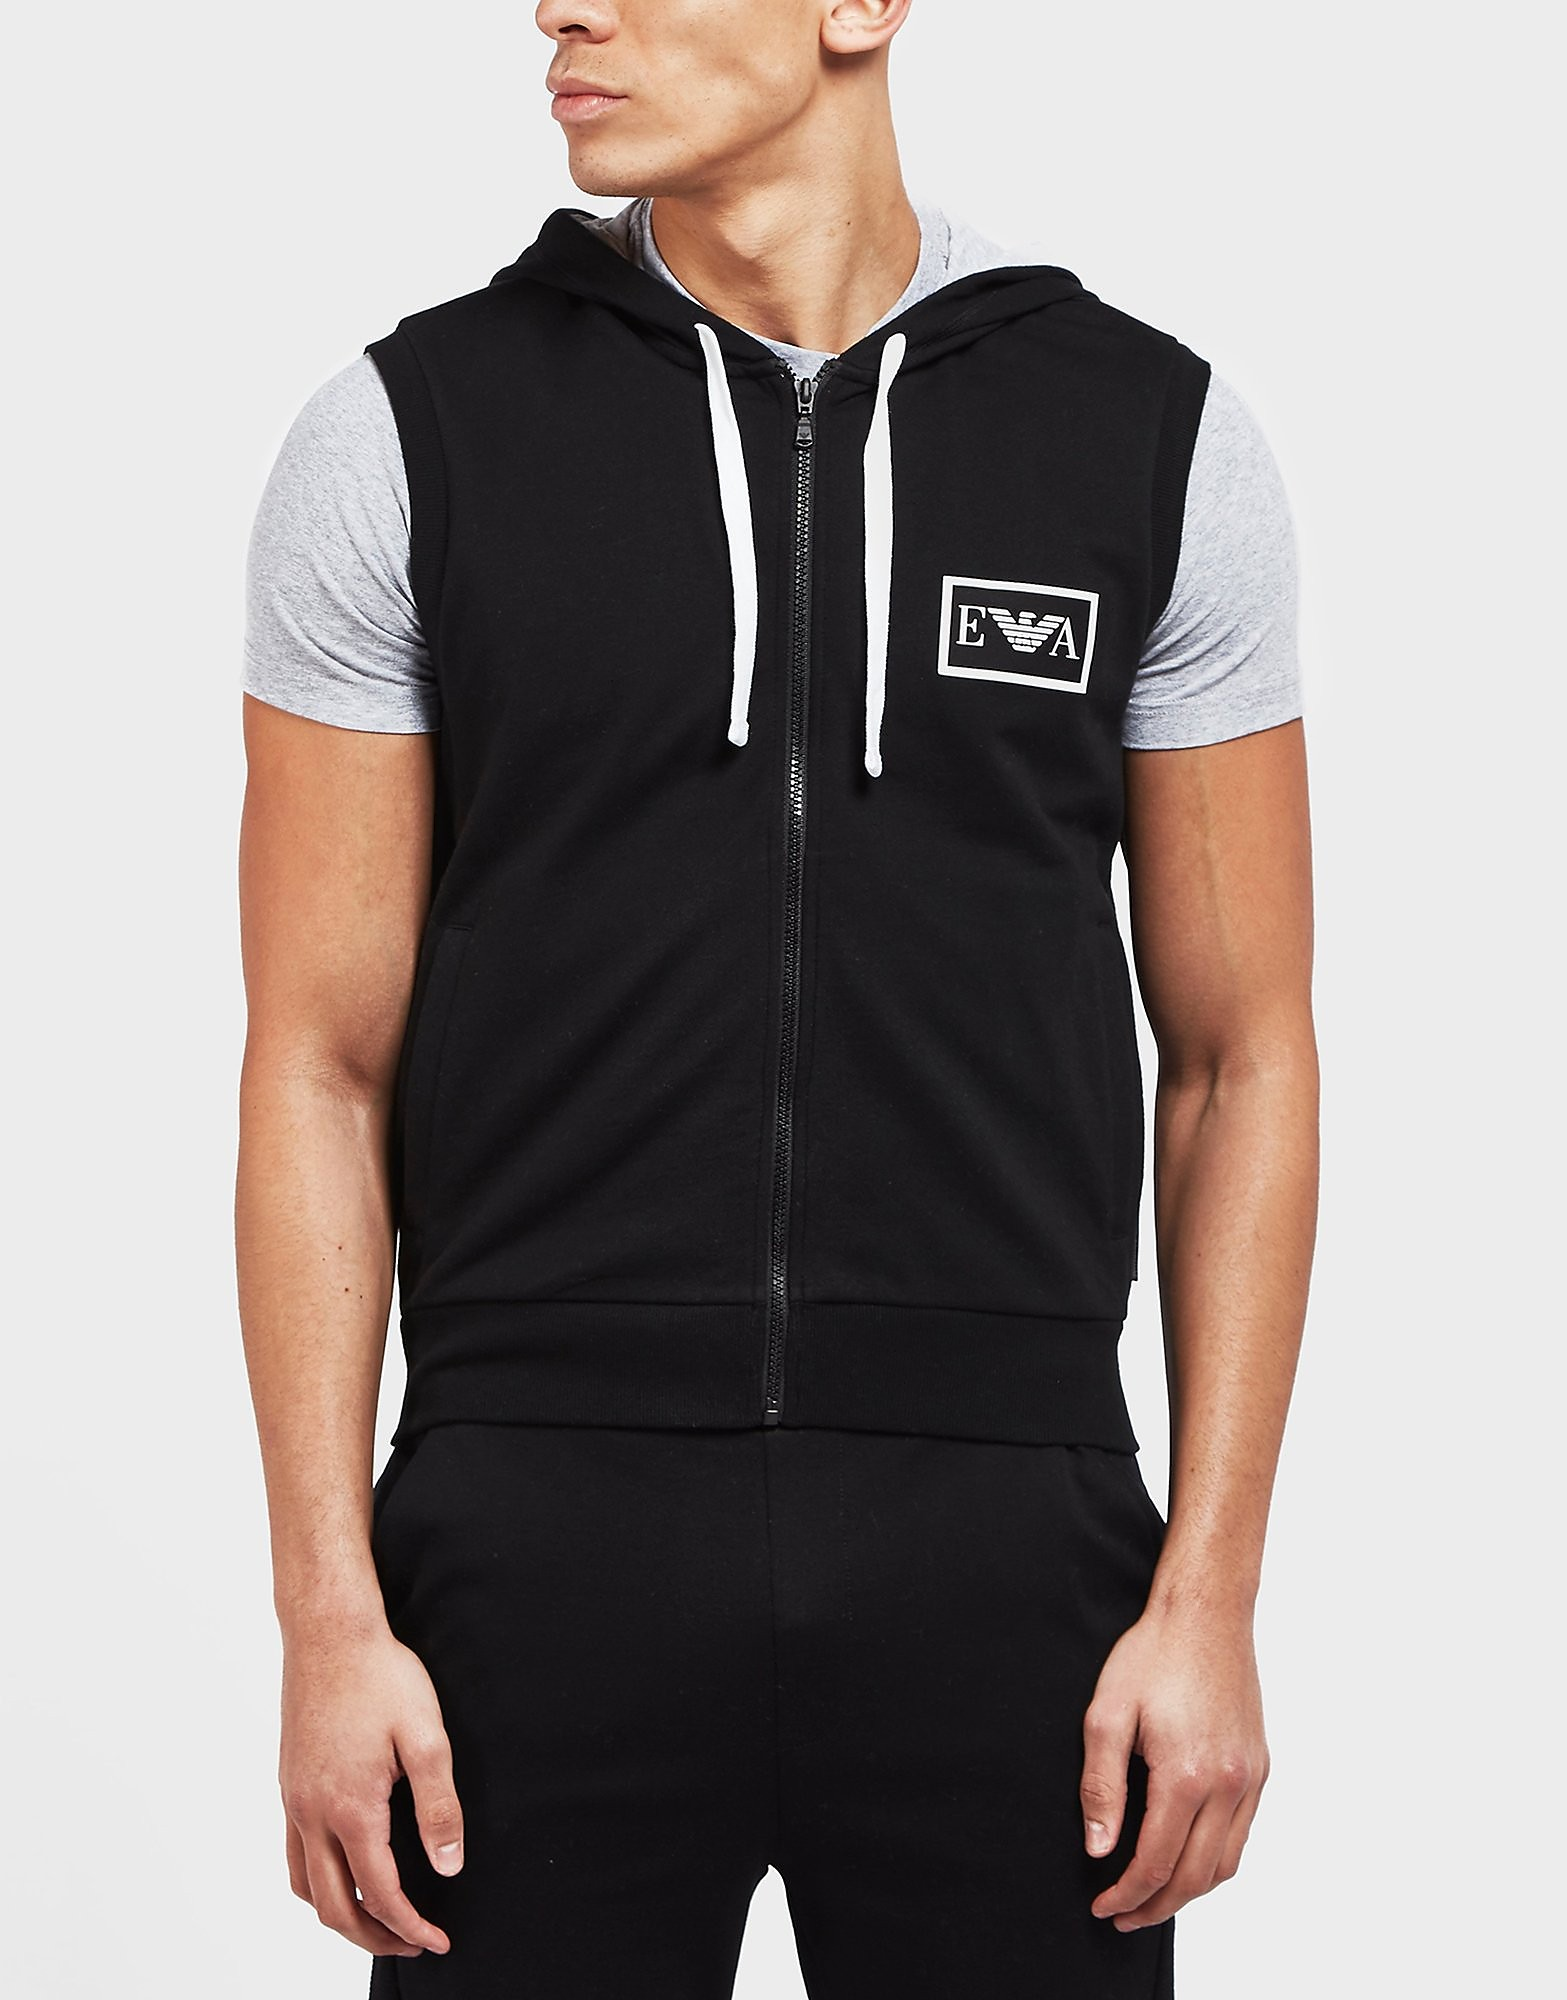 Emporio Armani Eva Sleeveless Zip Up Hoodie